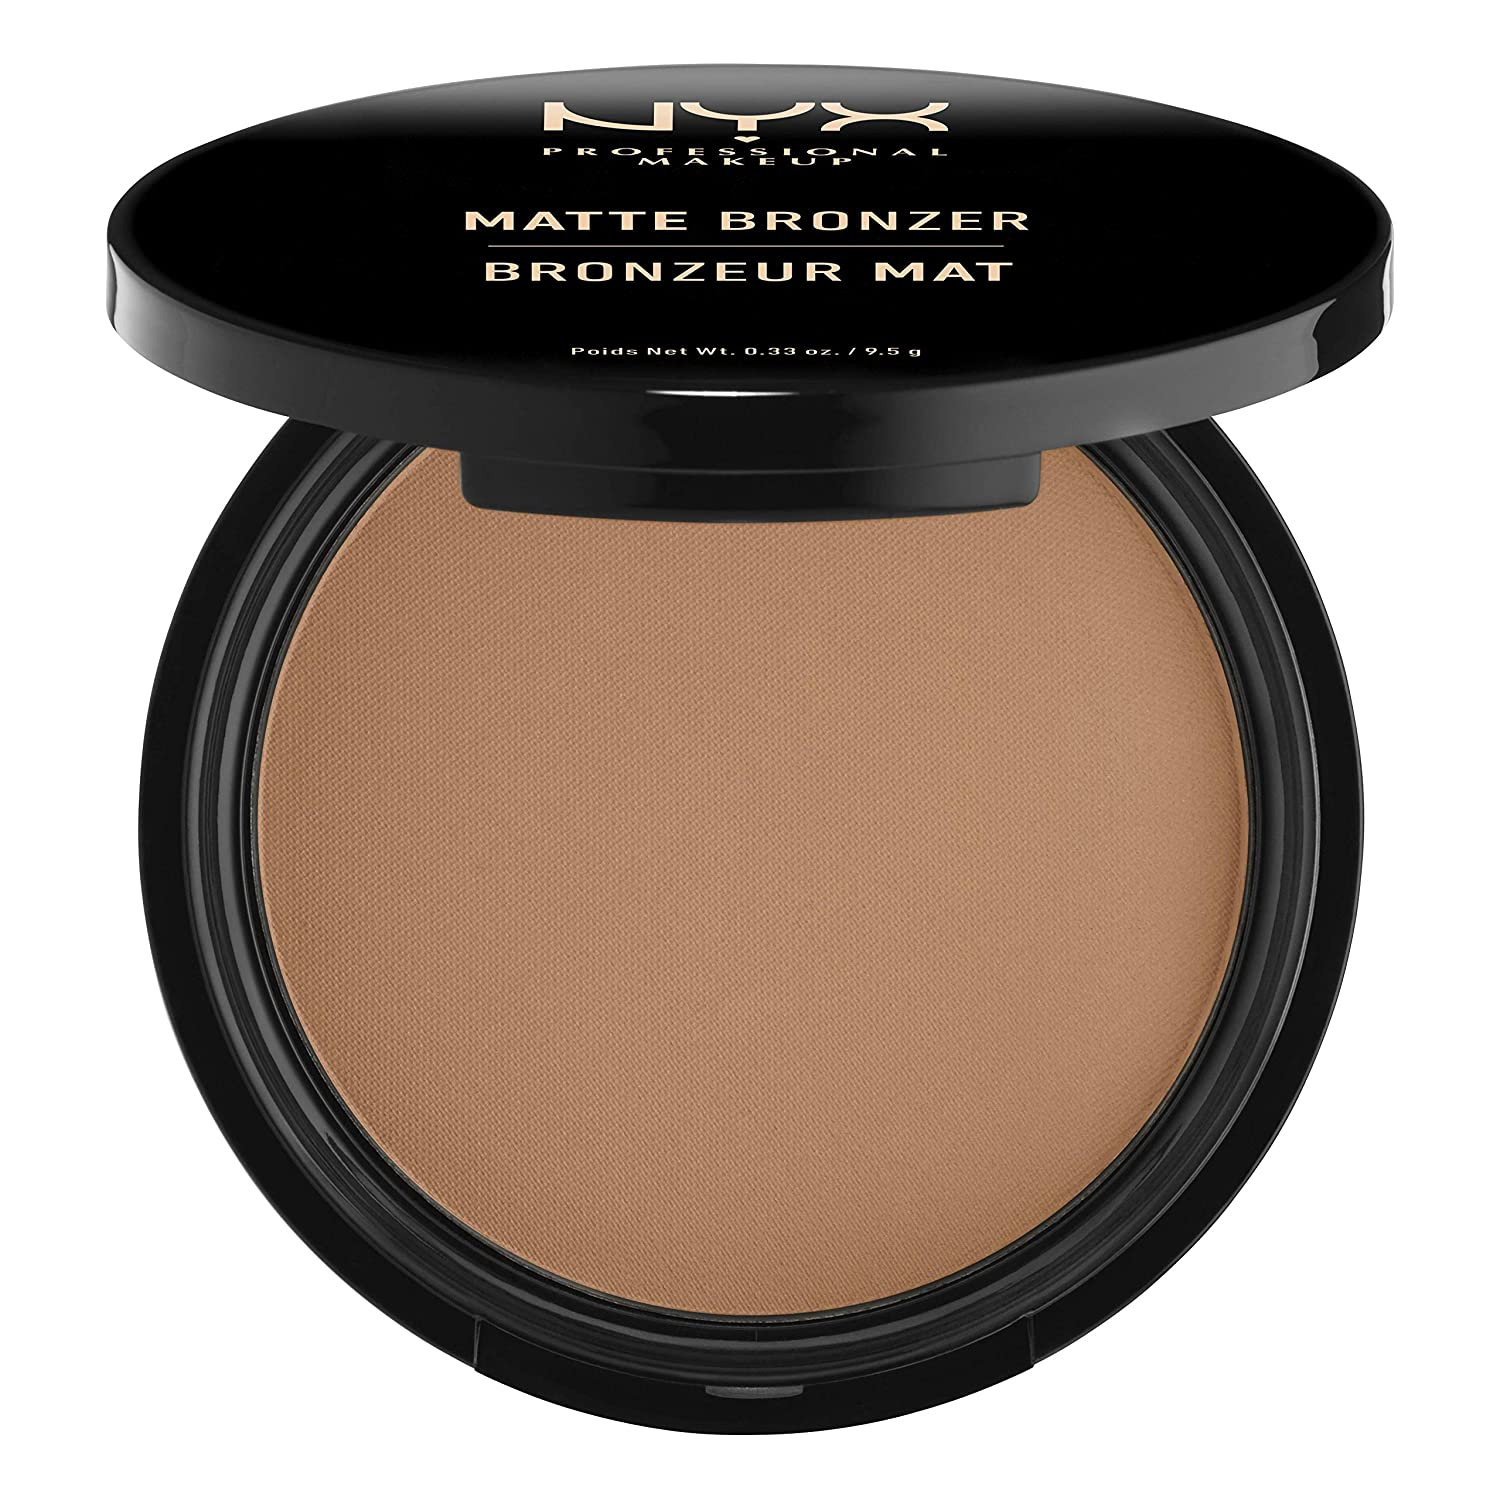 NYX PROFESSIONAL MAKEUP Matte Bronzer Review